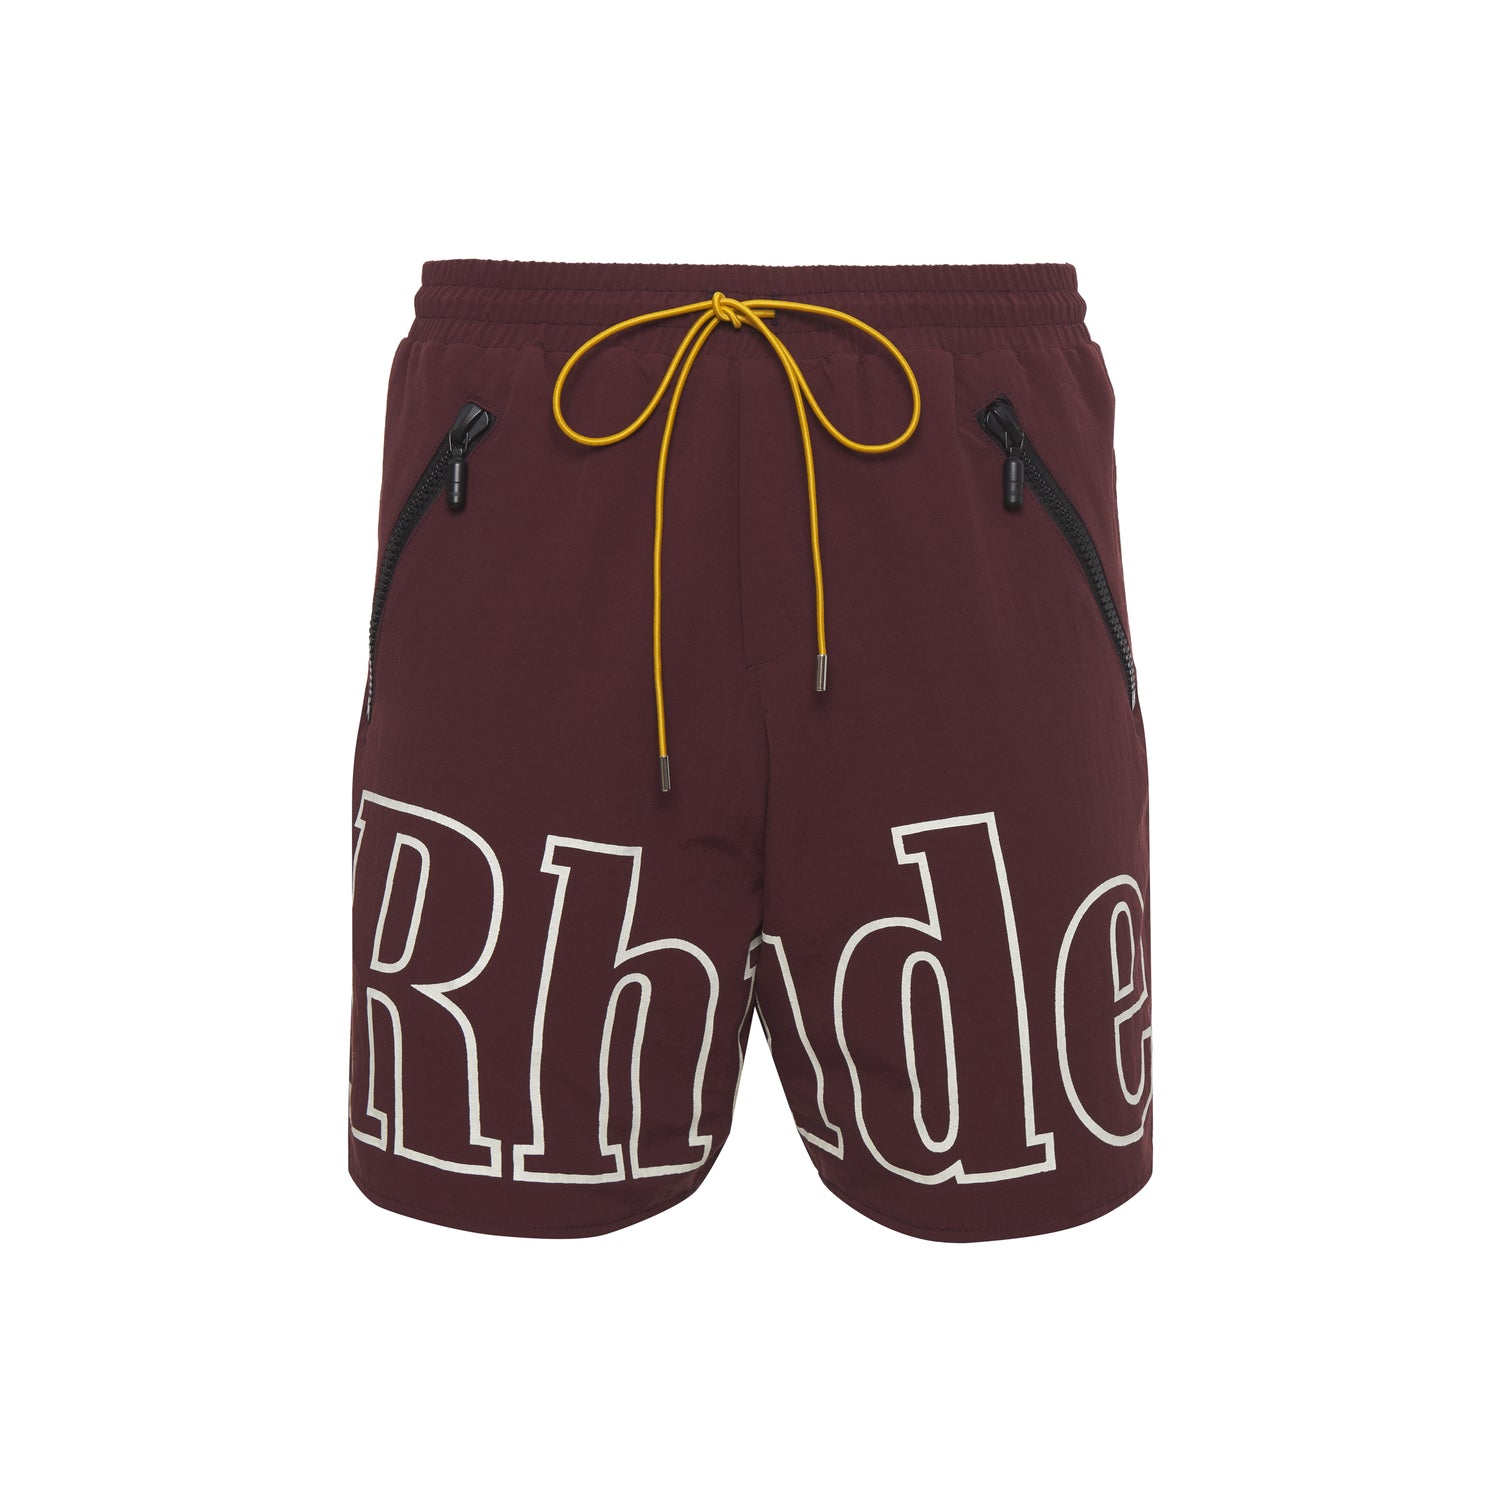 OVERSIZED LOGO SHORTS